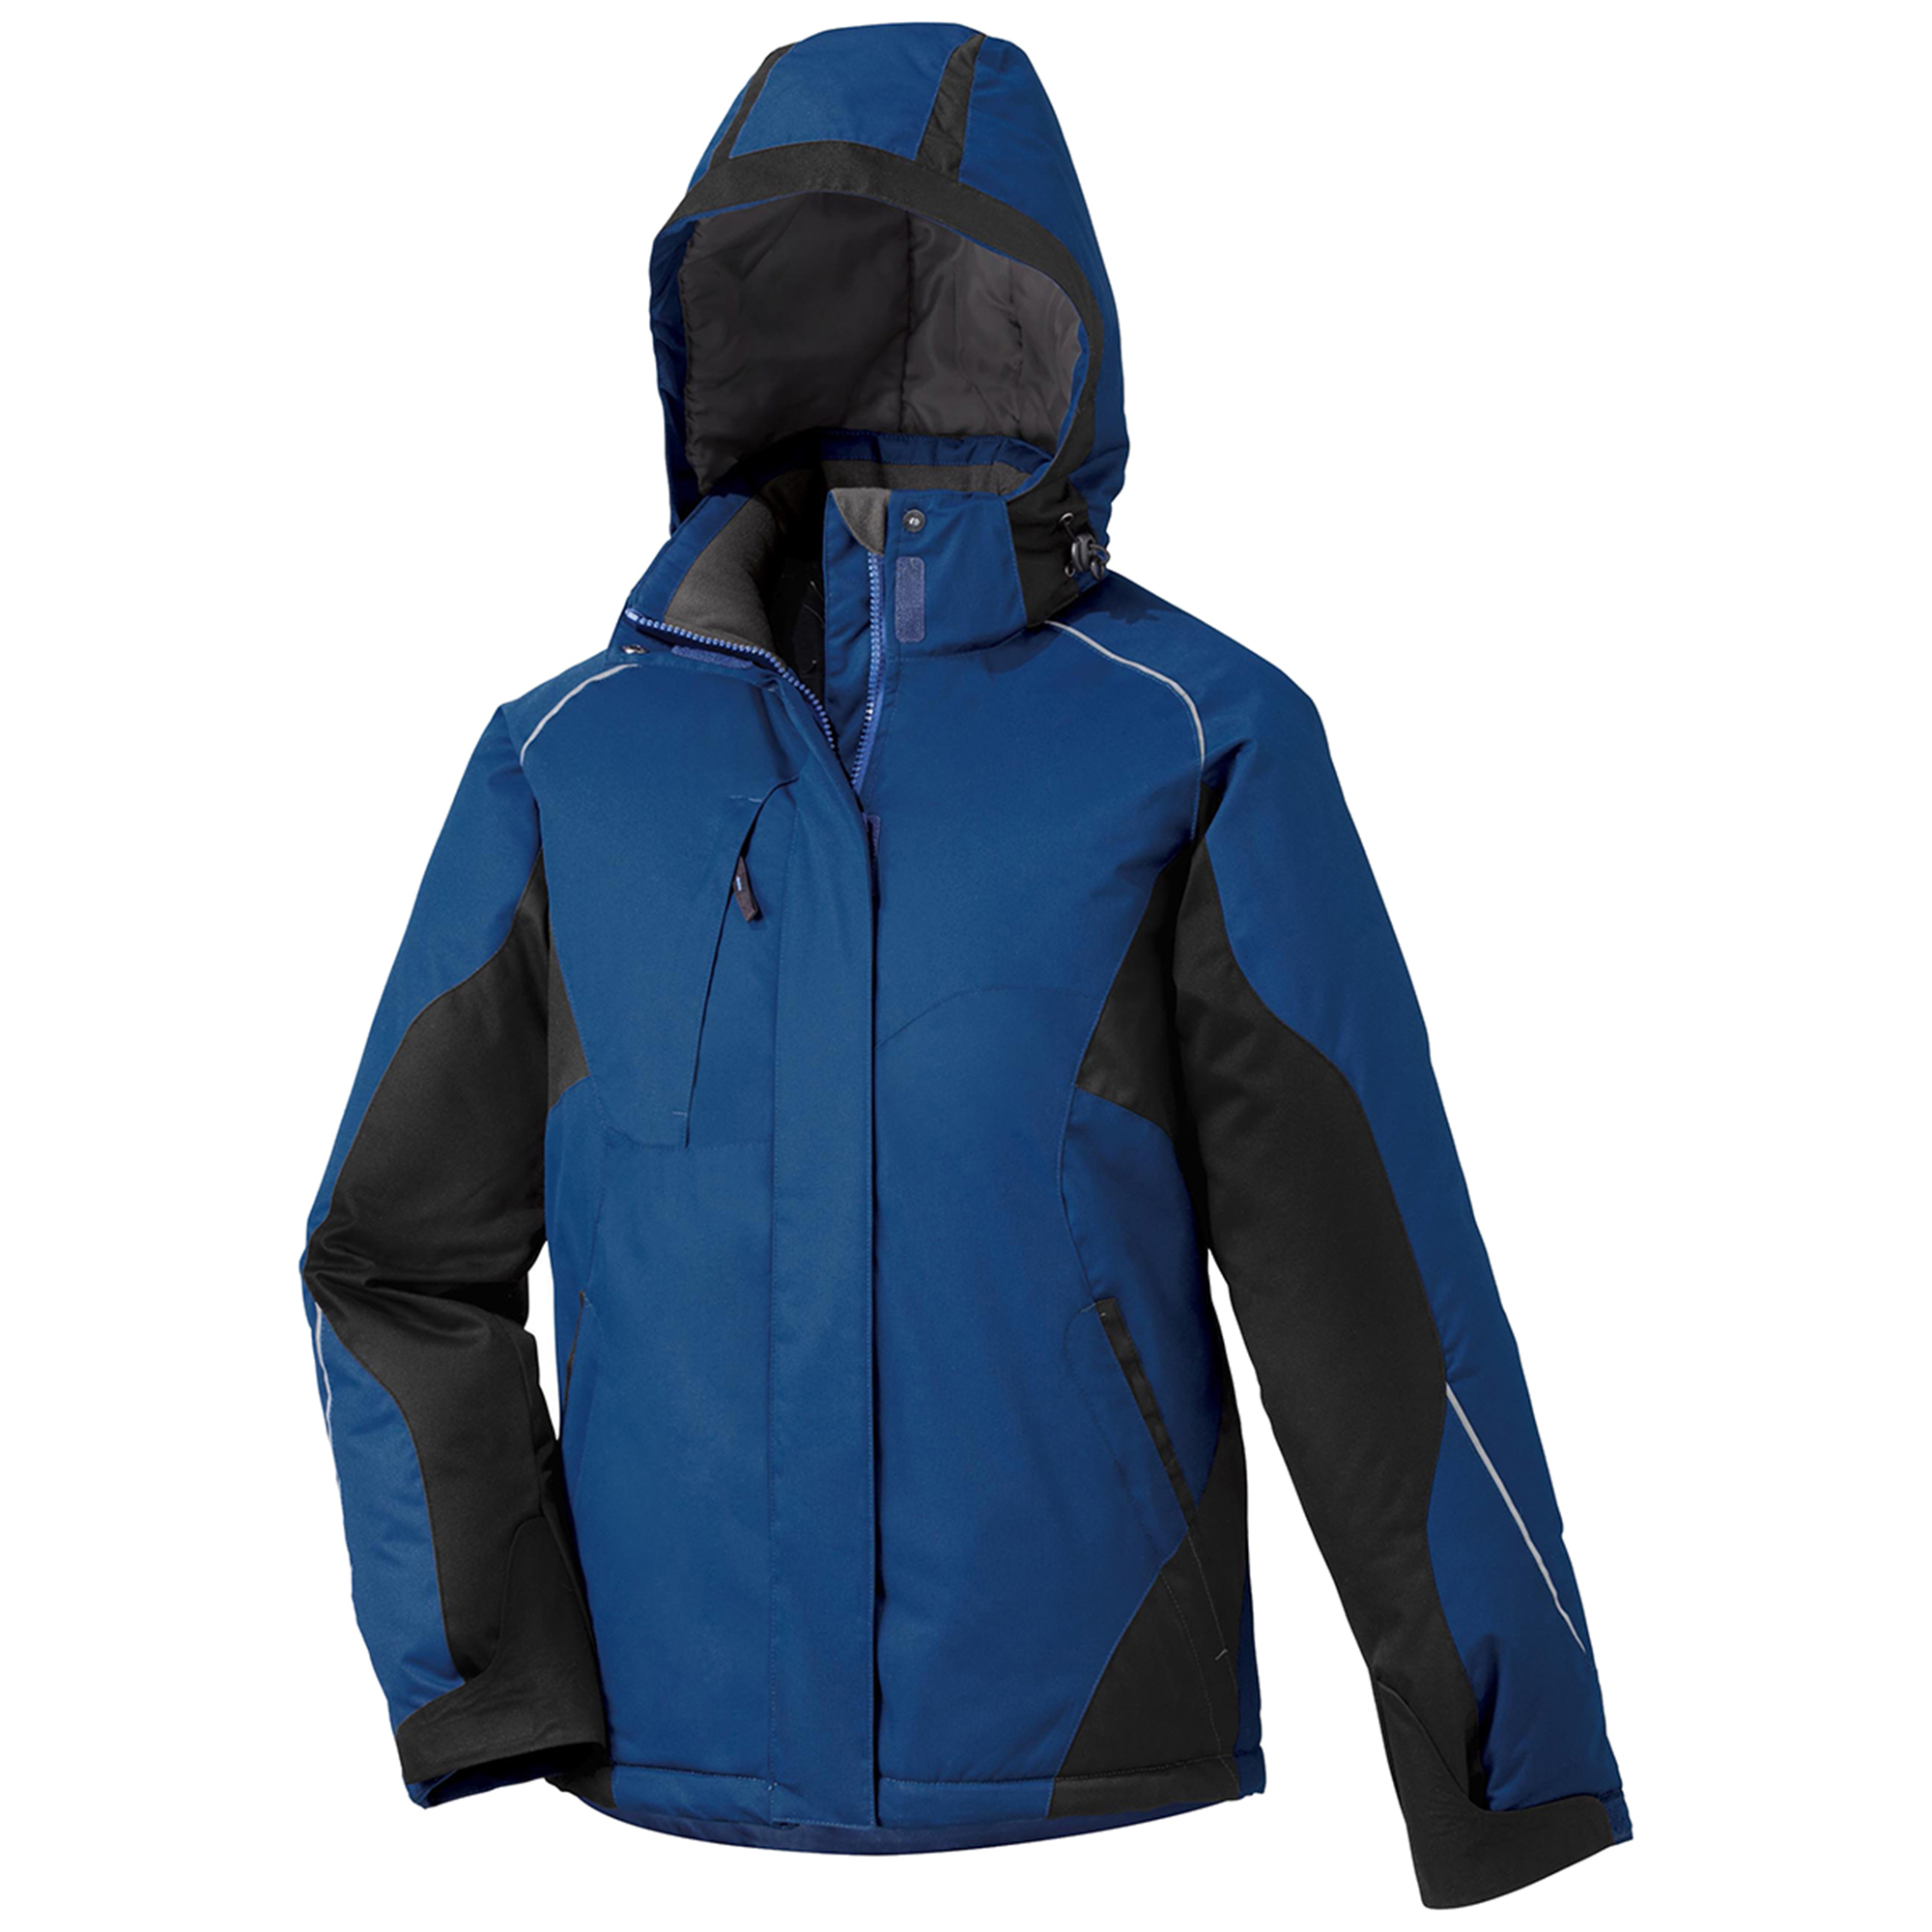 North End 78165 Women's Reflective Piping Insulated Jacket at Sears.com